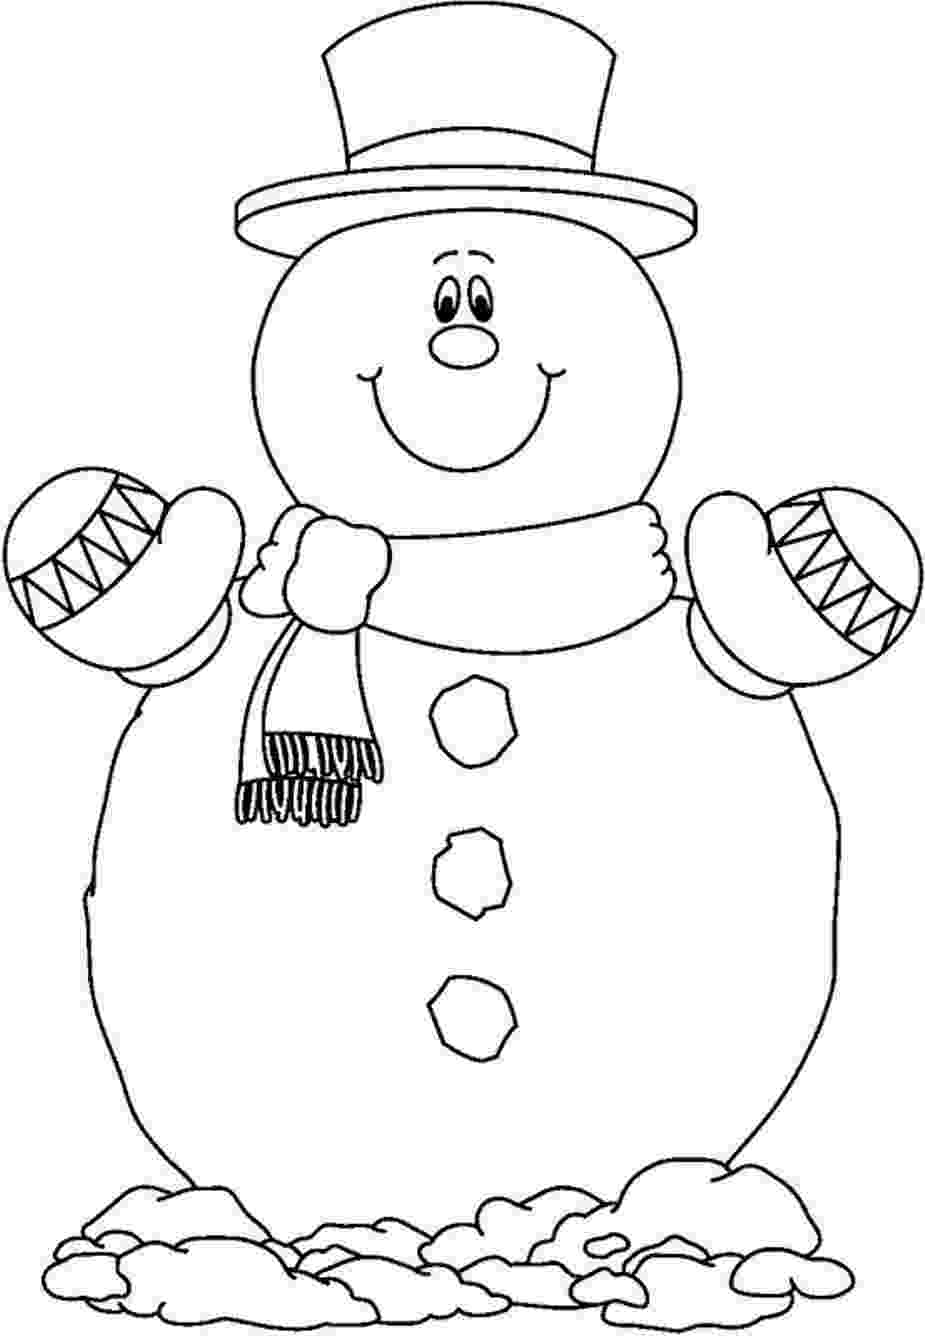 snowman color page making a snowman coloring page crayolacom snowman page color